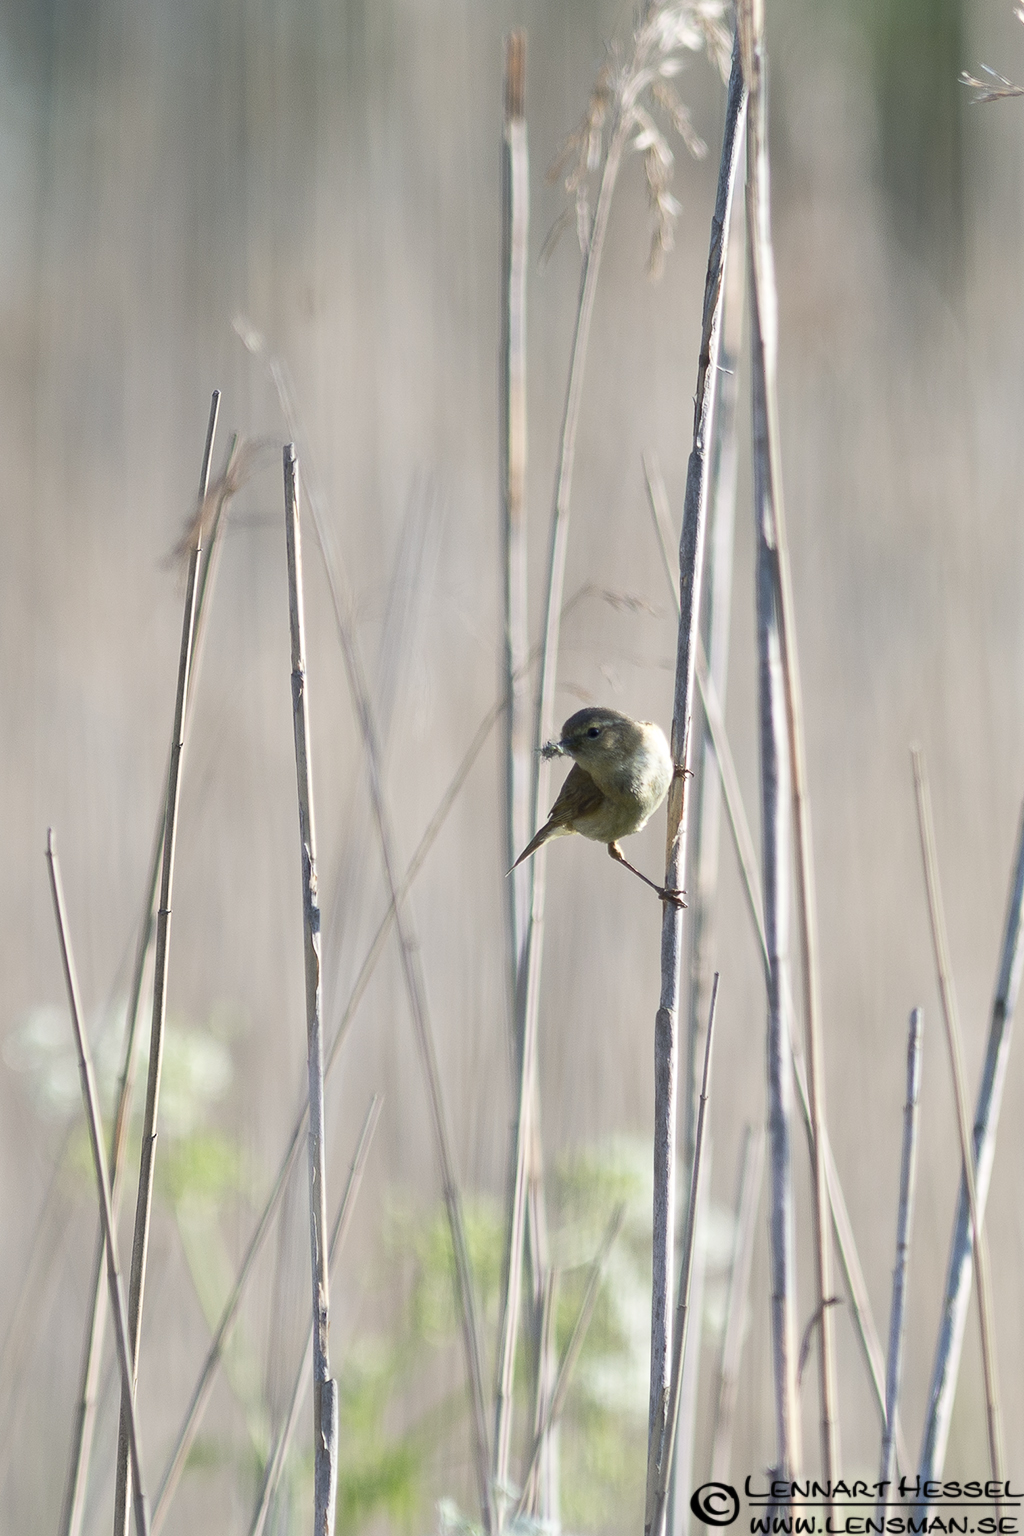 Willow Warbler at Säveån, Gothenburg